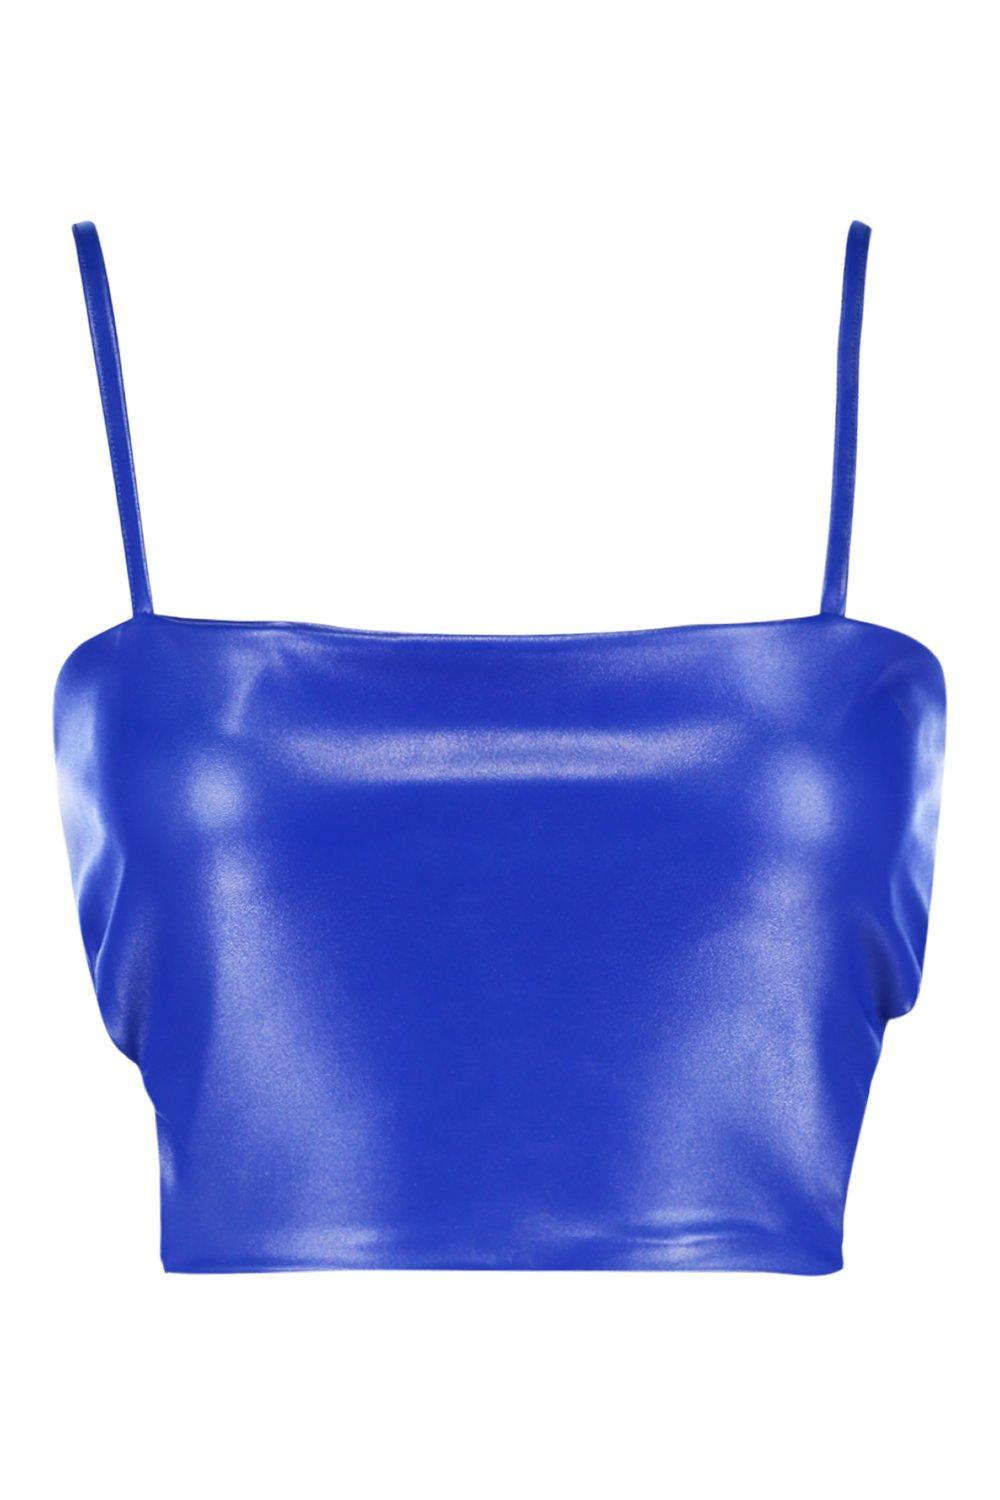 Tall Tall Bralet Strappy Tall Strappy PU Bralet cobalt cobalt Bralet Strappy cobalt PU PU BpXq86